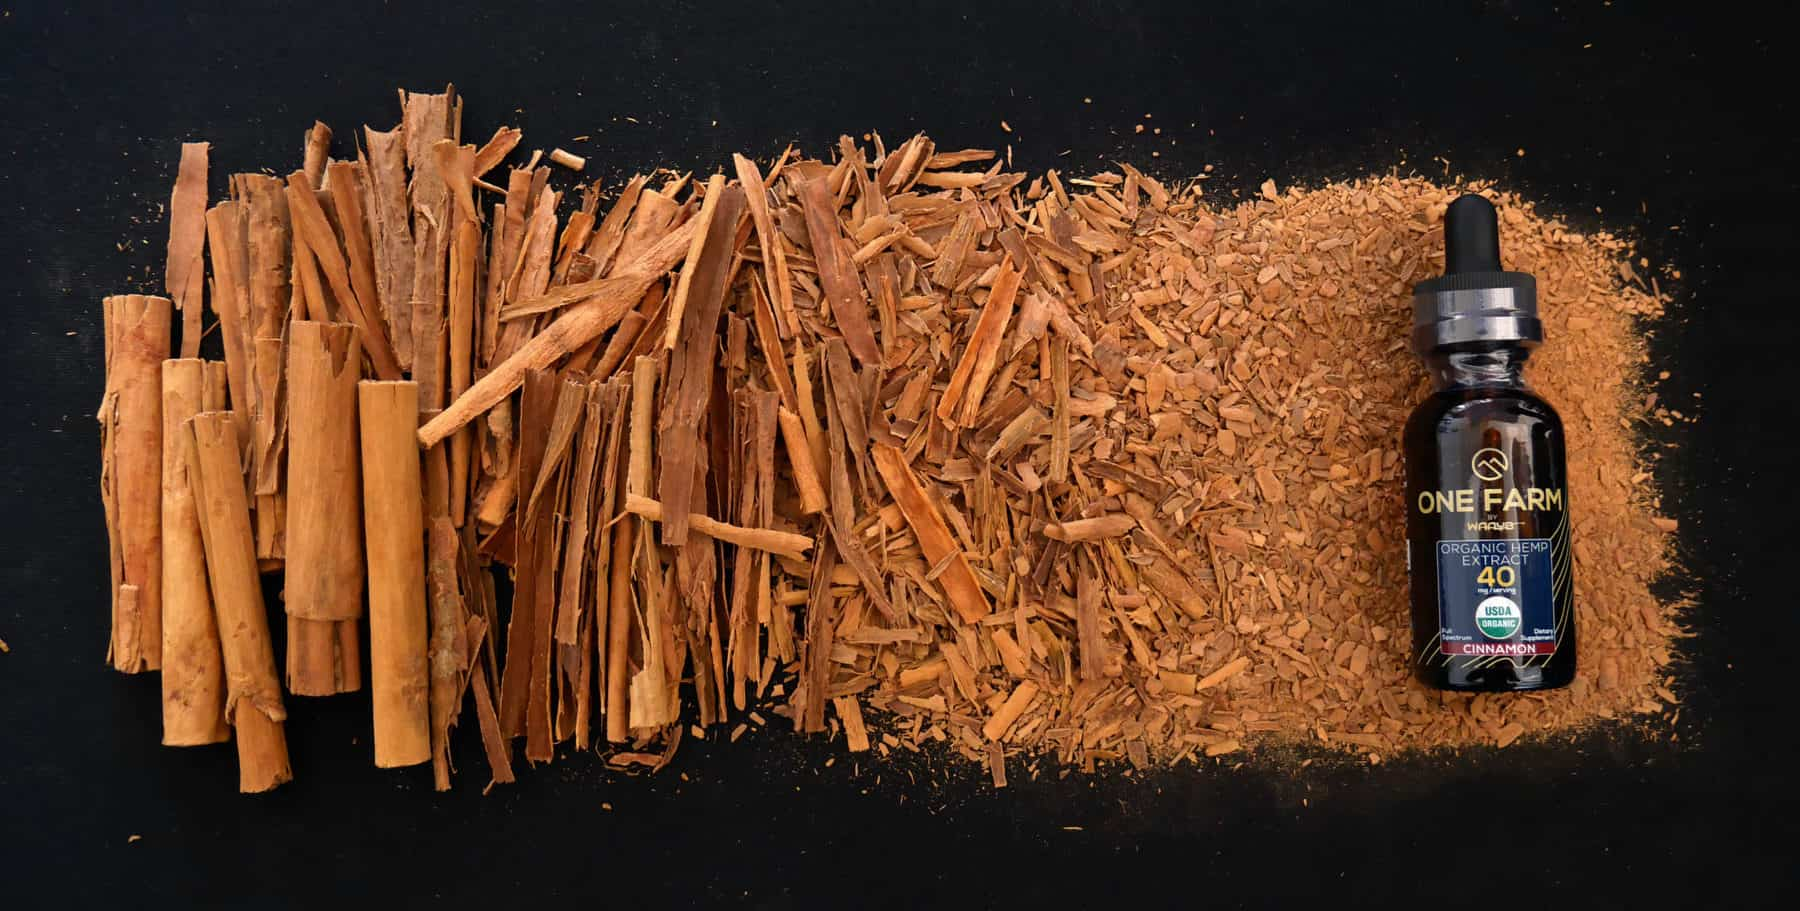 One Farm Cinnamon and Ingredient